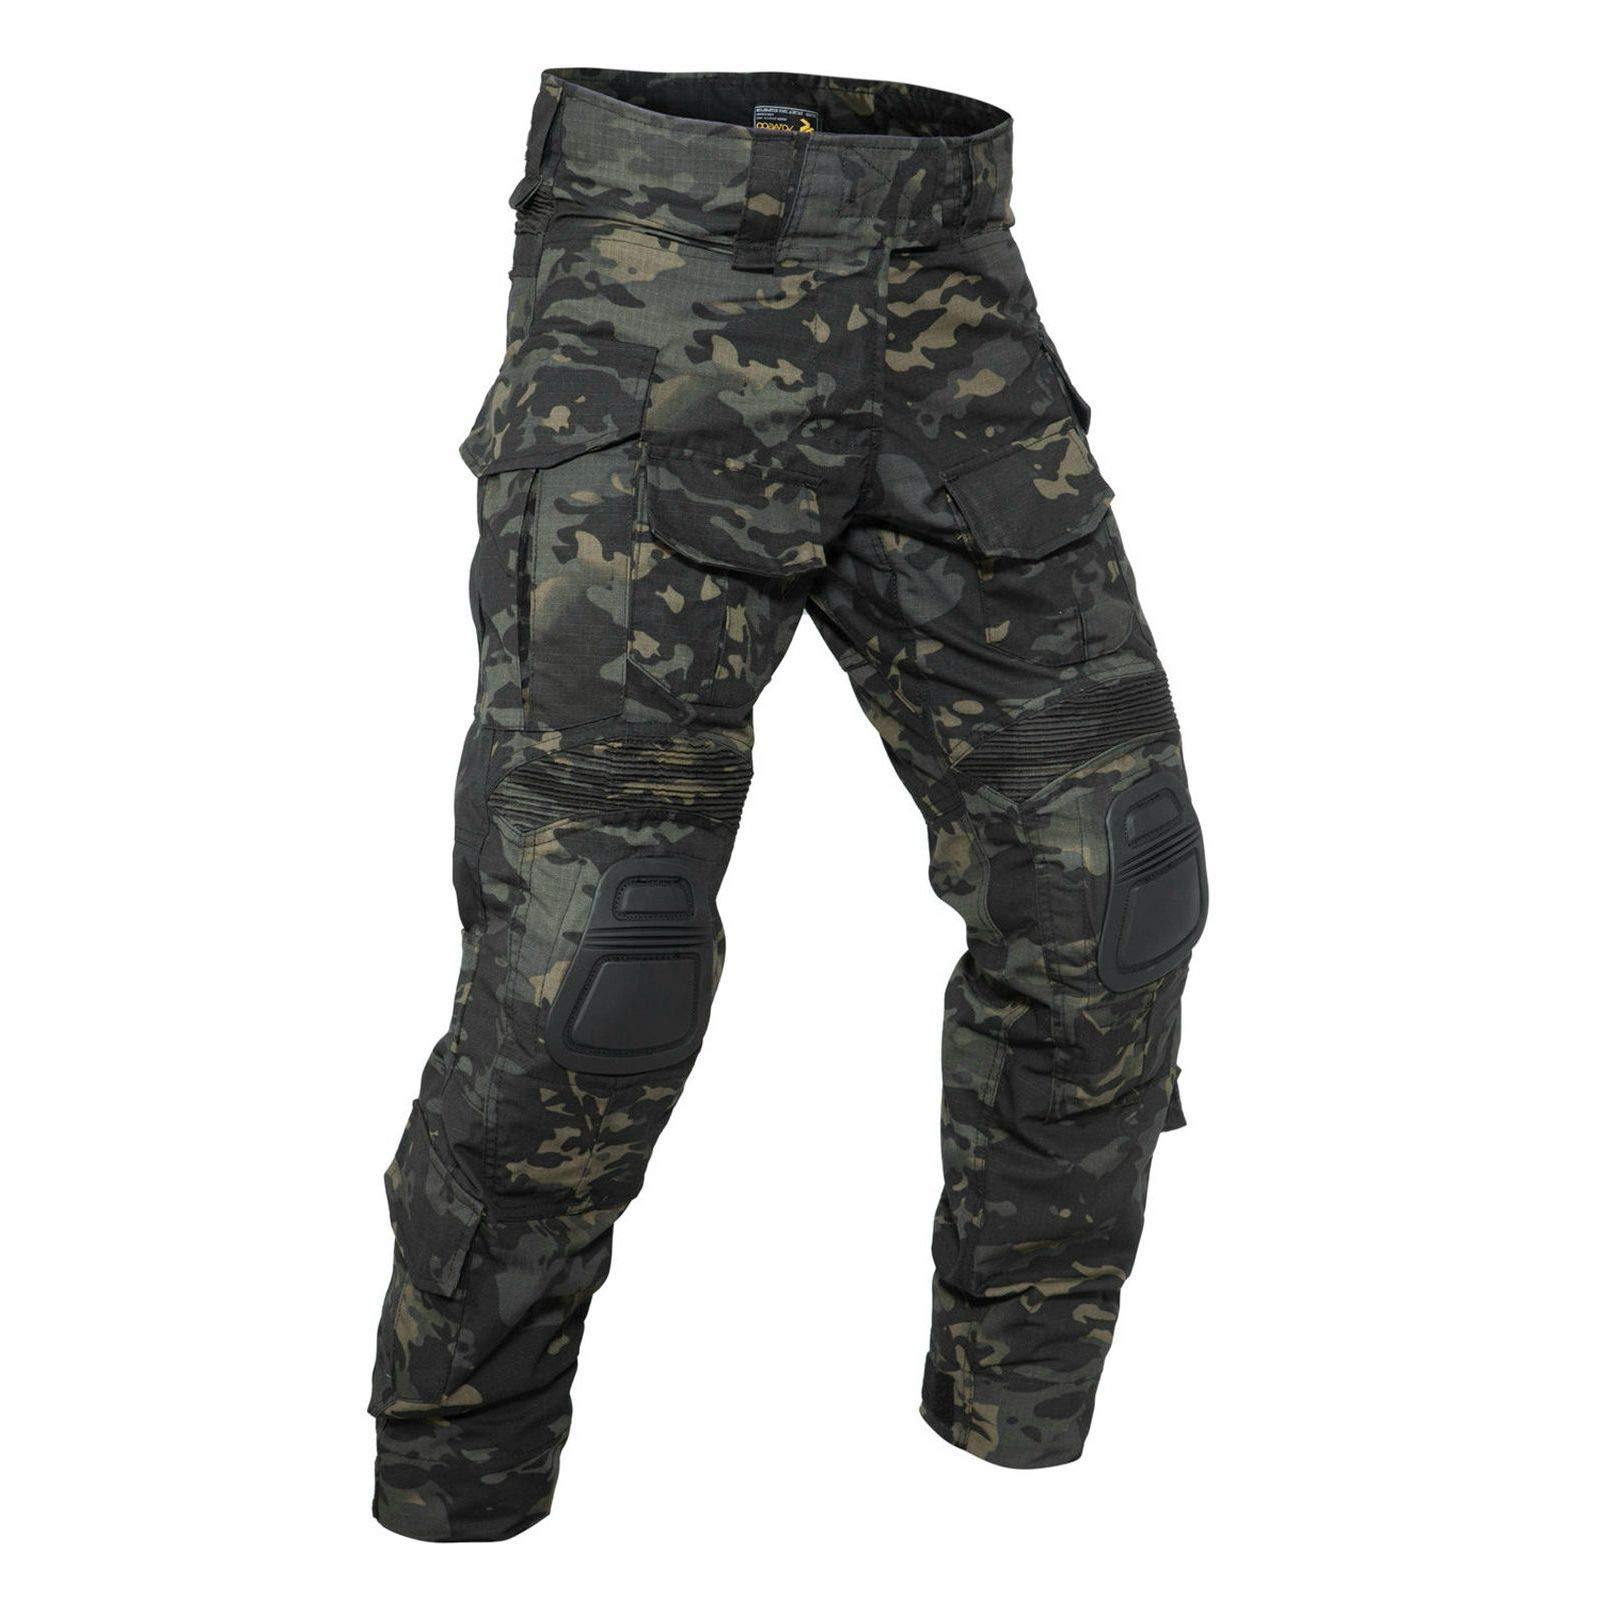 YEVHEV G3 Combat Tactical Pants Camouflage with Knee Pads for Men Paintball Clothing Gear(Belt not Included)